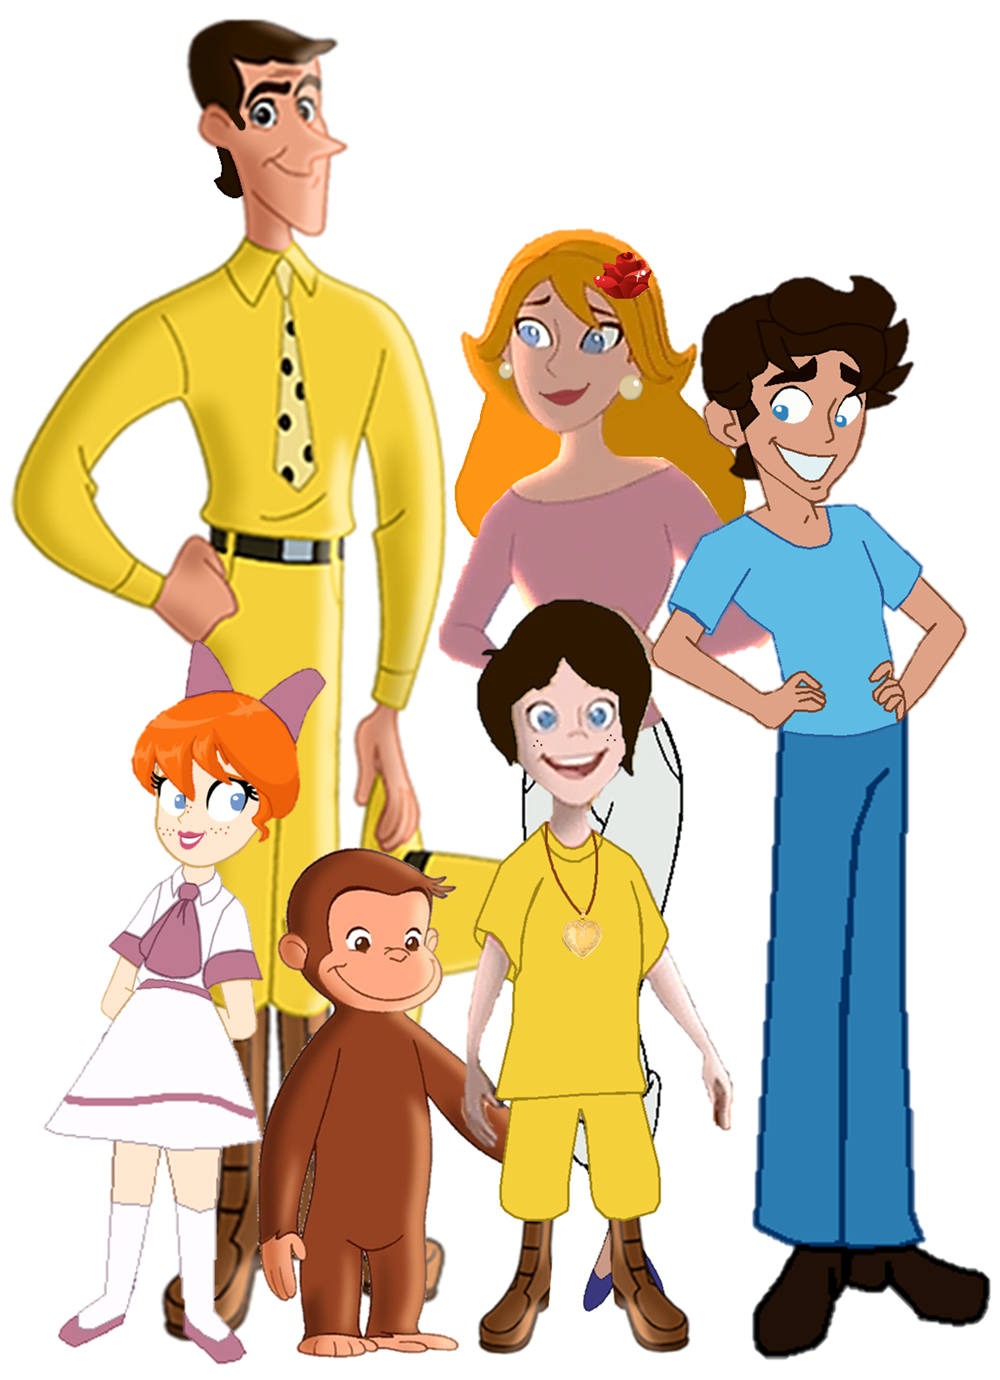 Cruz345 Images Curious George A Family Portrait HD Wallpaper And Background Photos